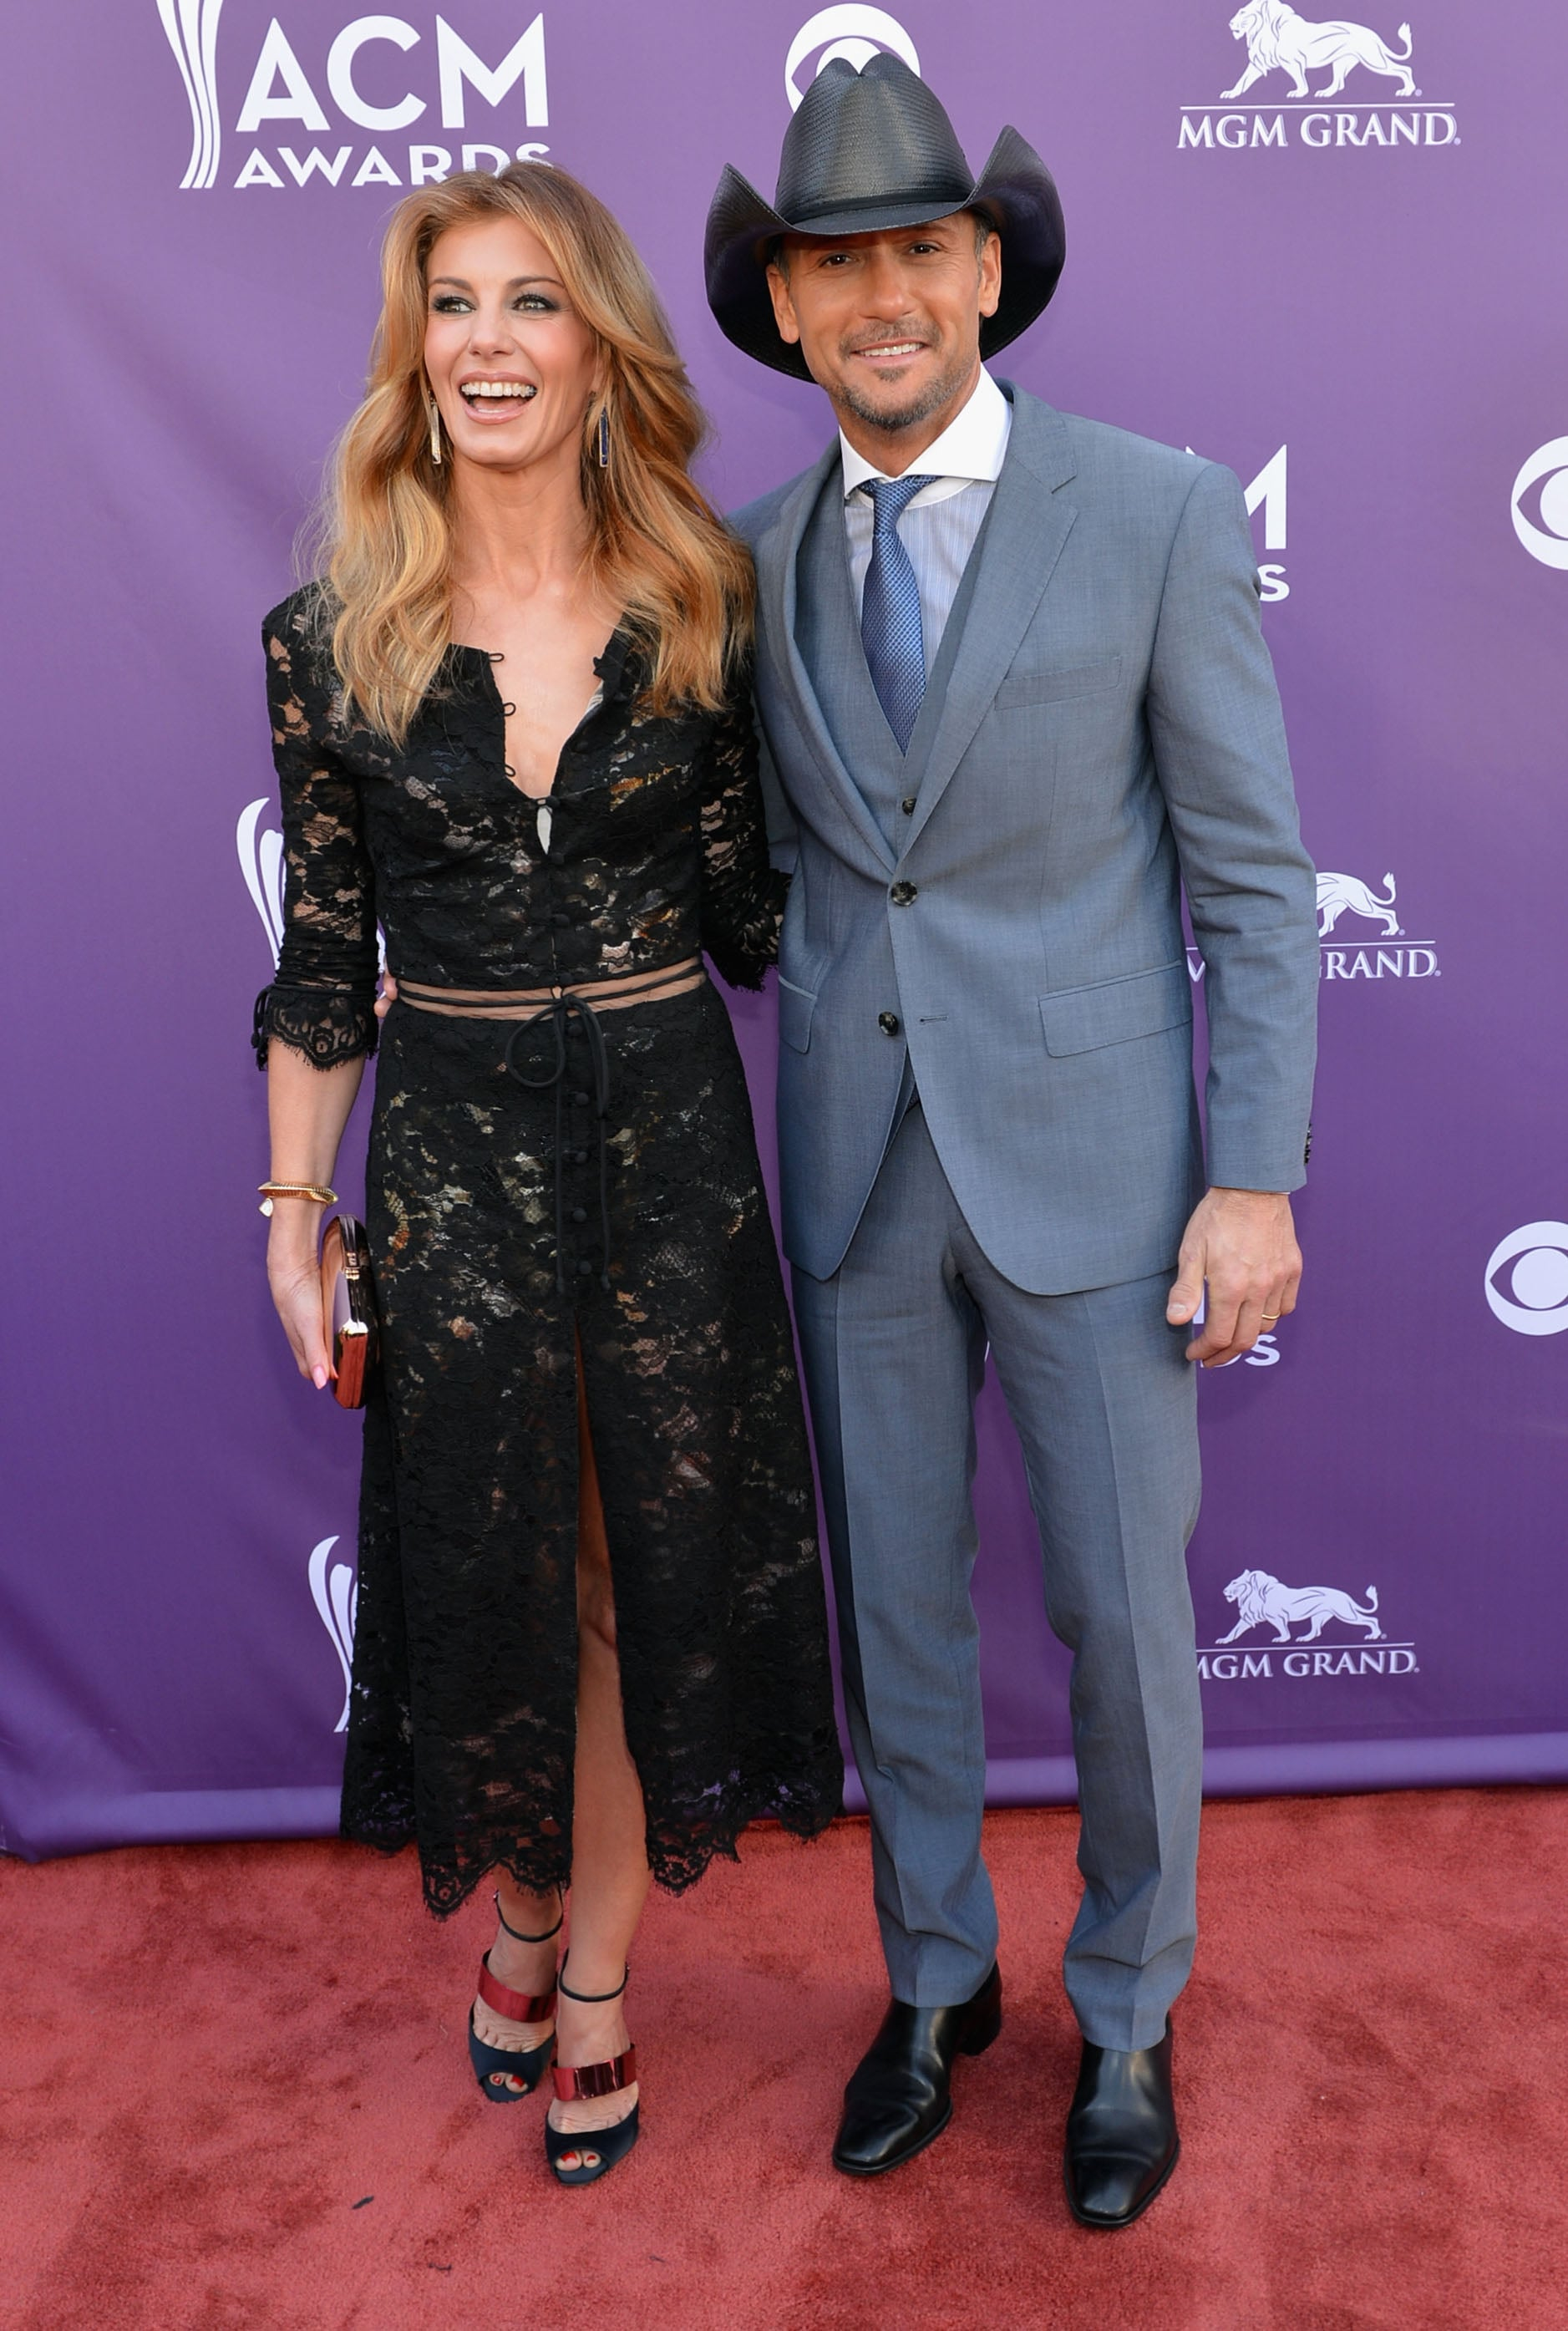 Faith Hill and Tim McGraw at the ACM Awards.